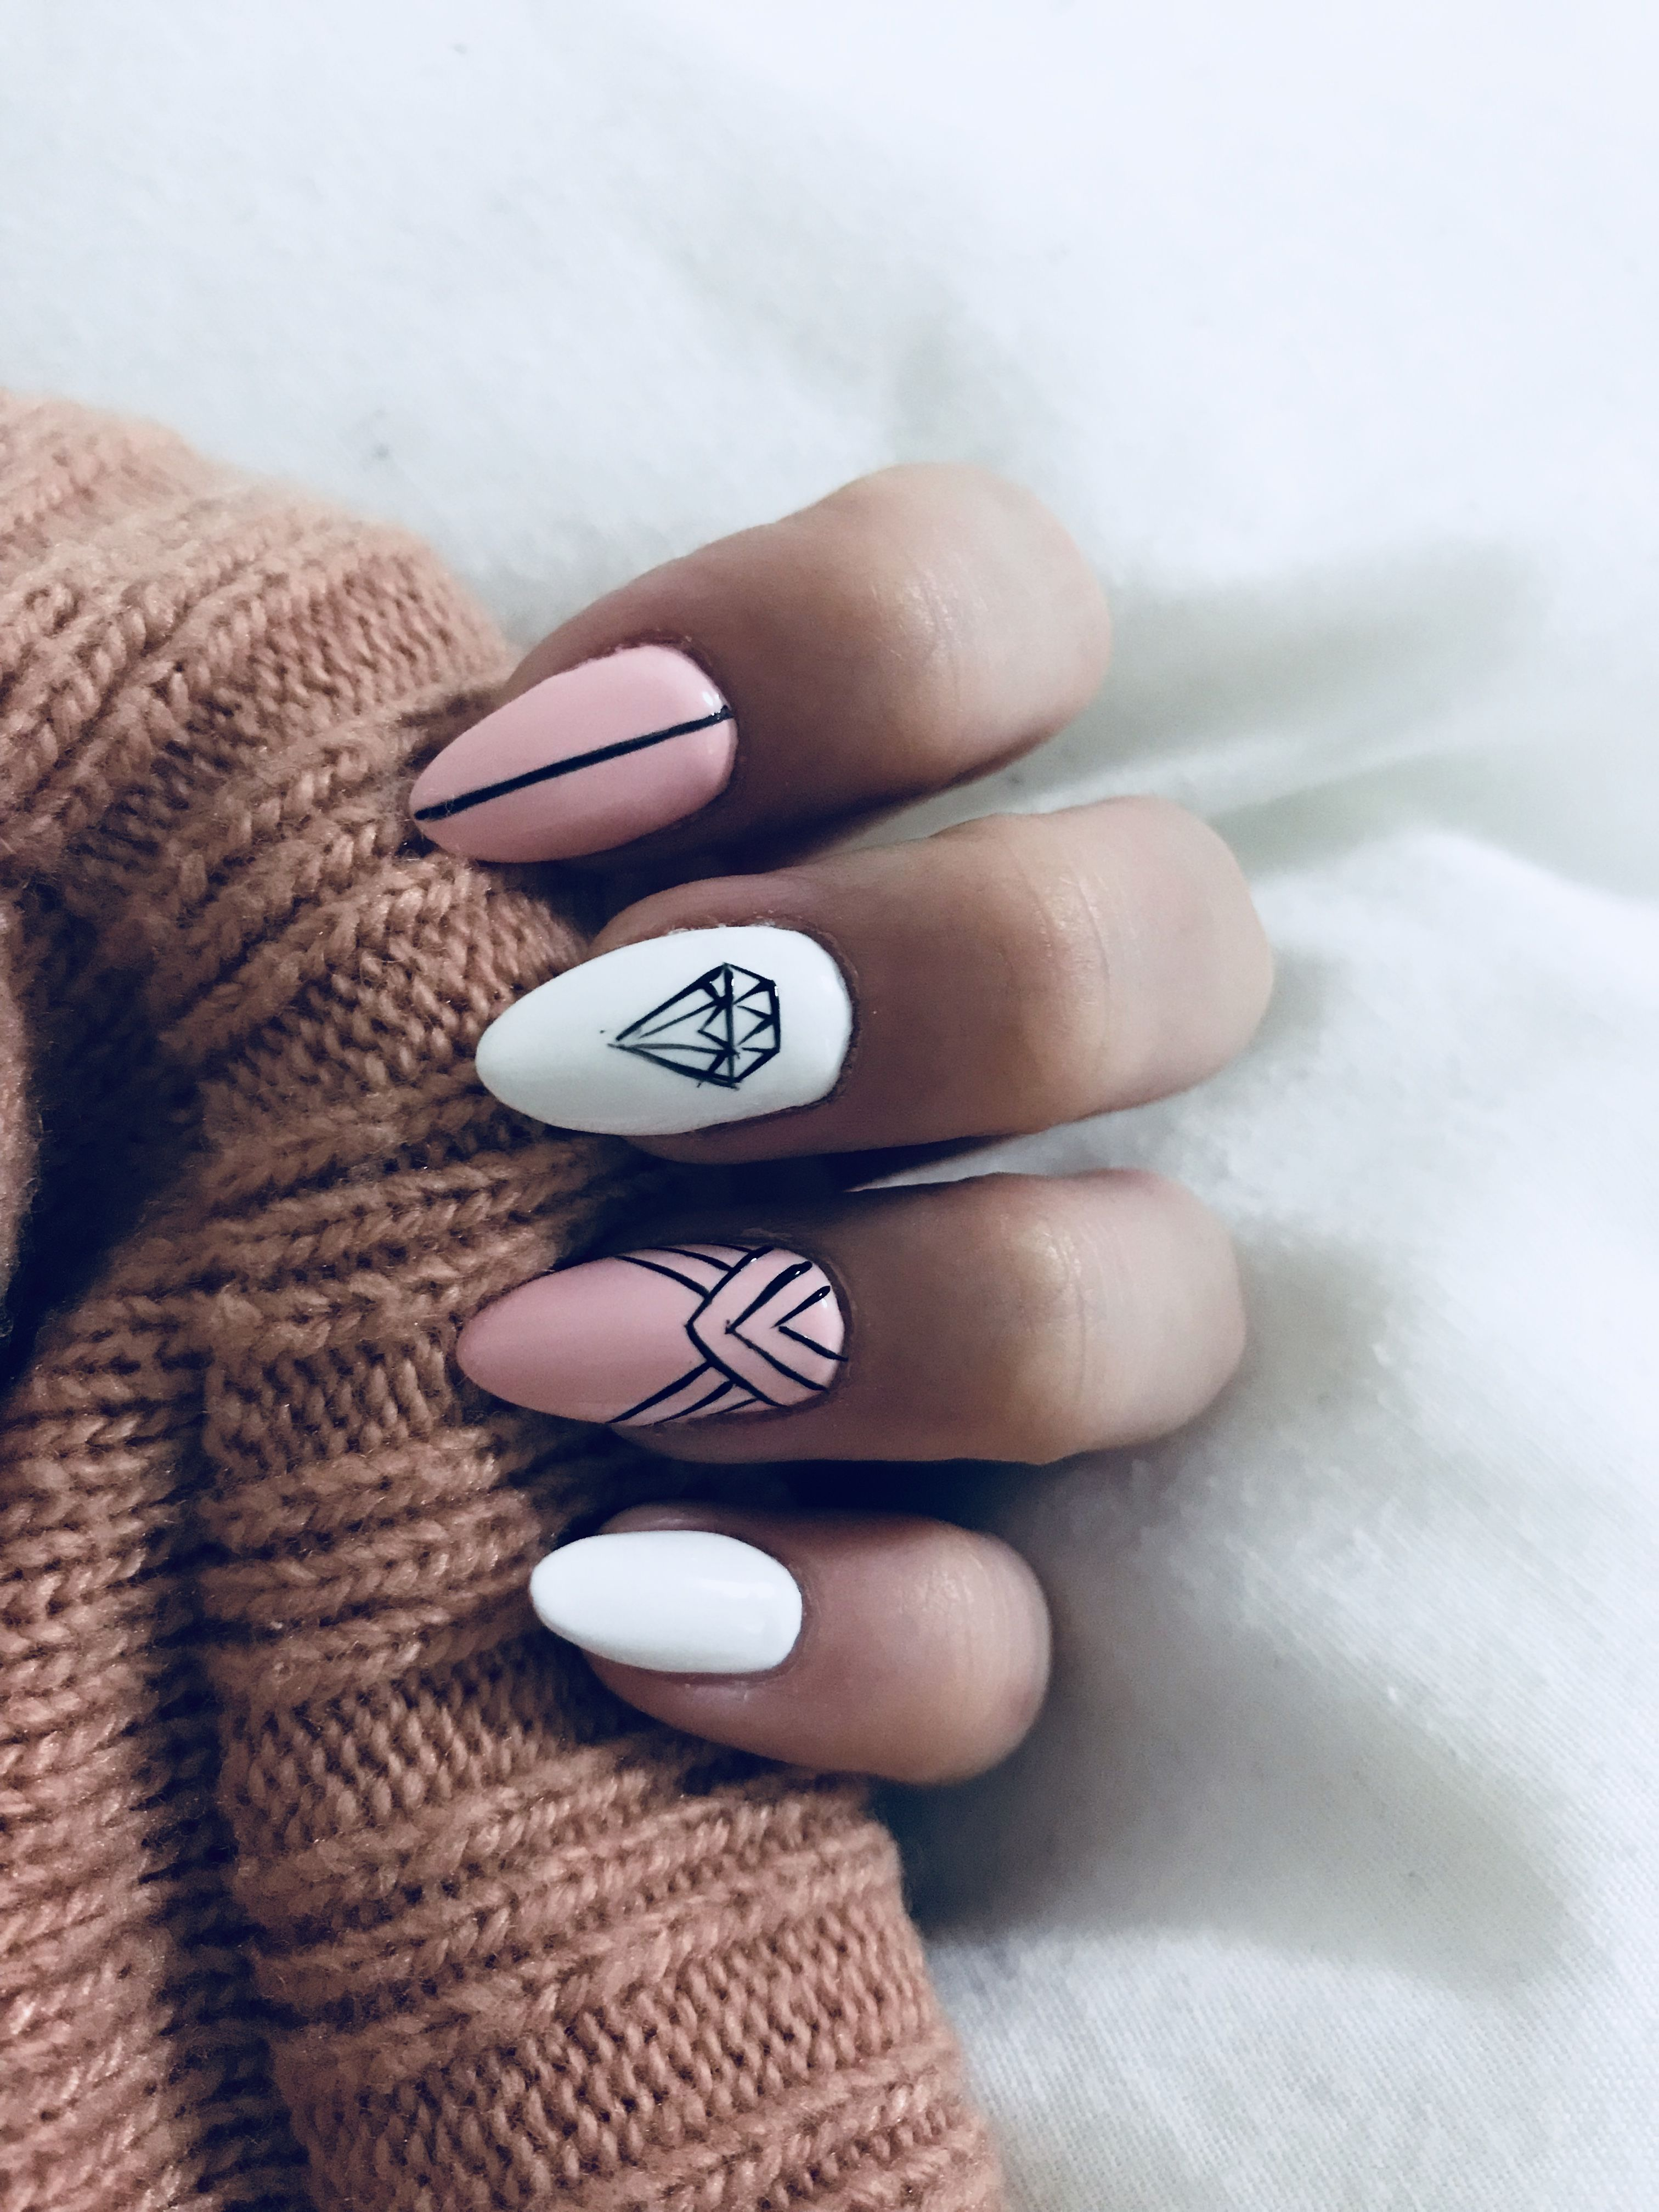 Without the dimo6 | Nail fashion | Pinterest | Nescafe, Coffee and ...